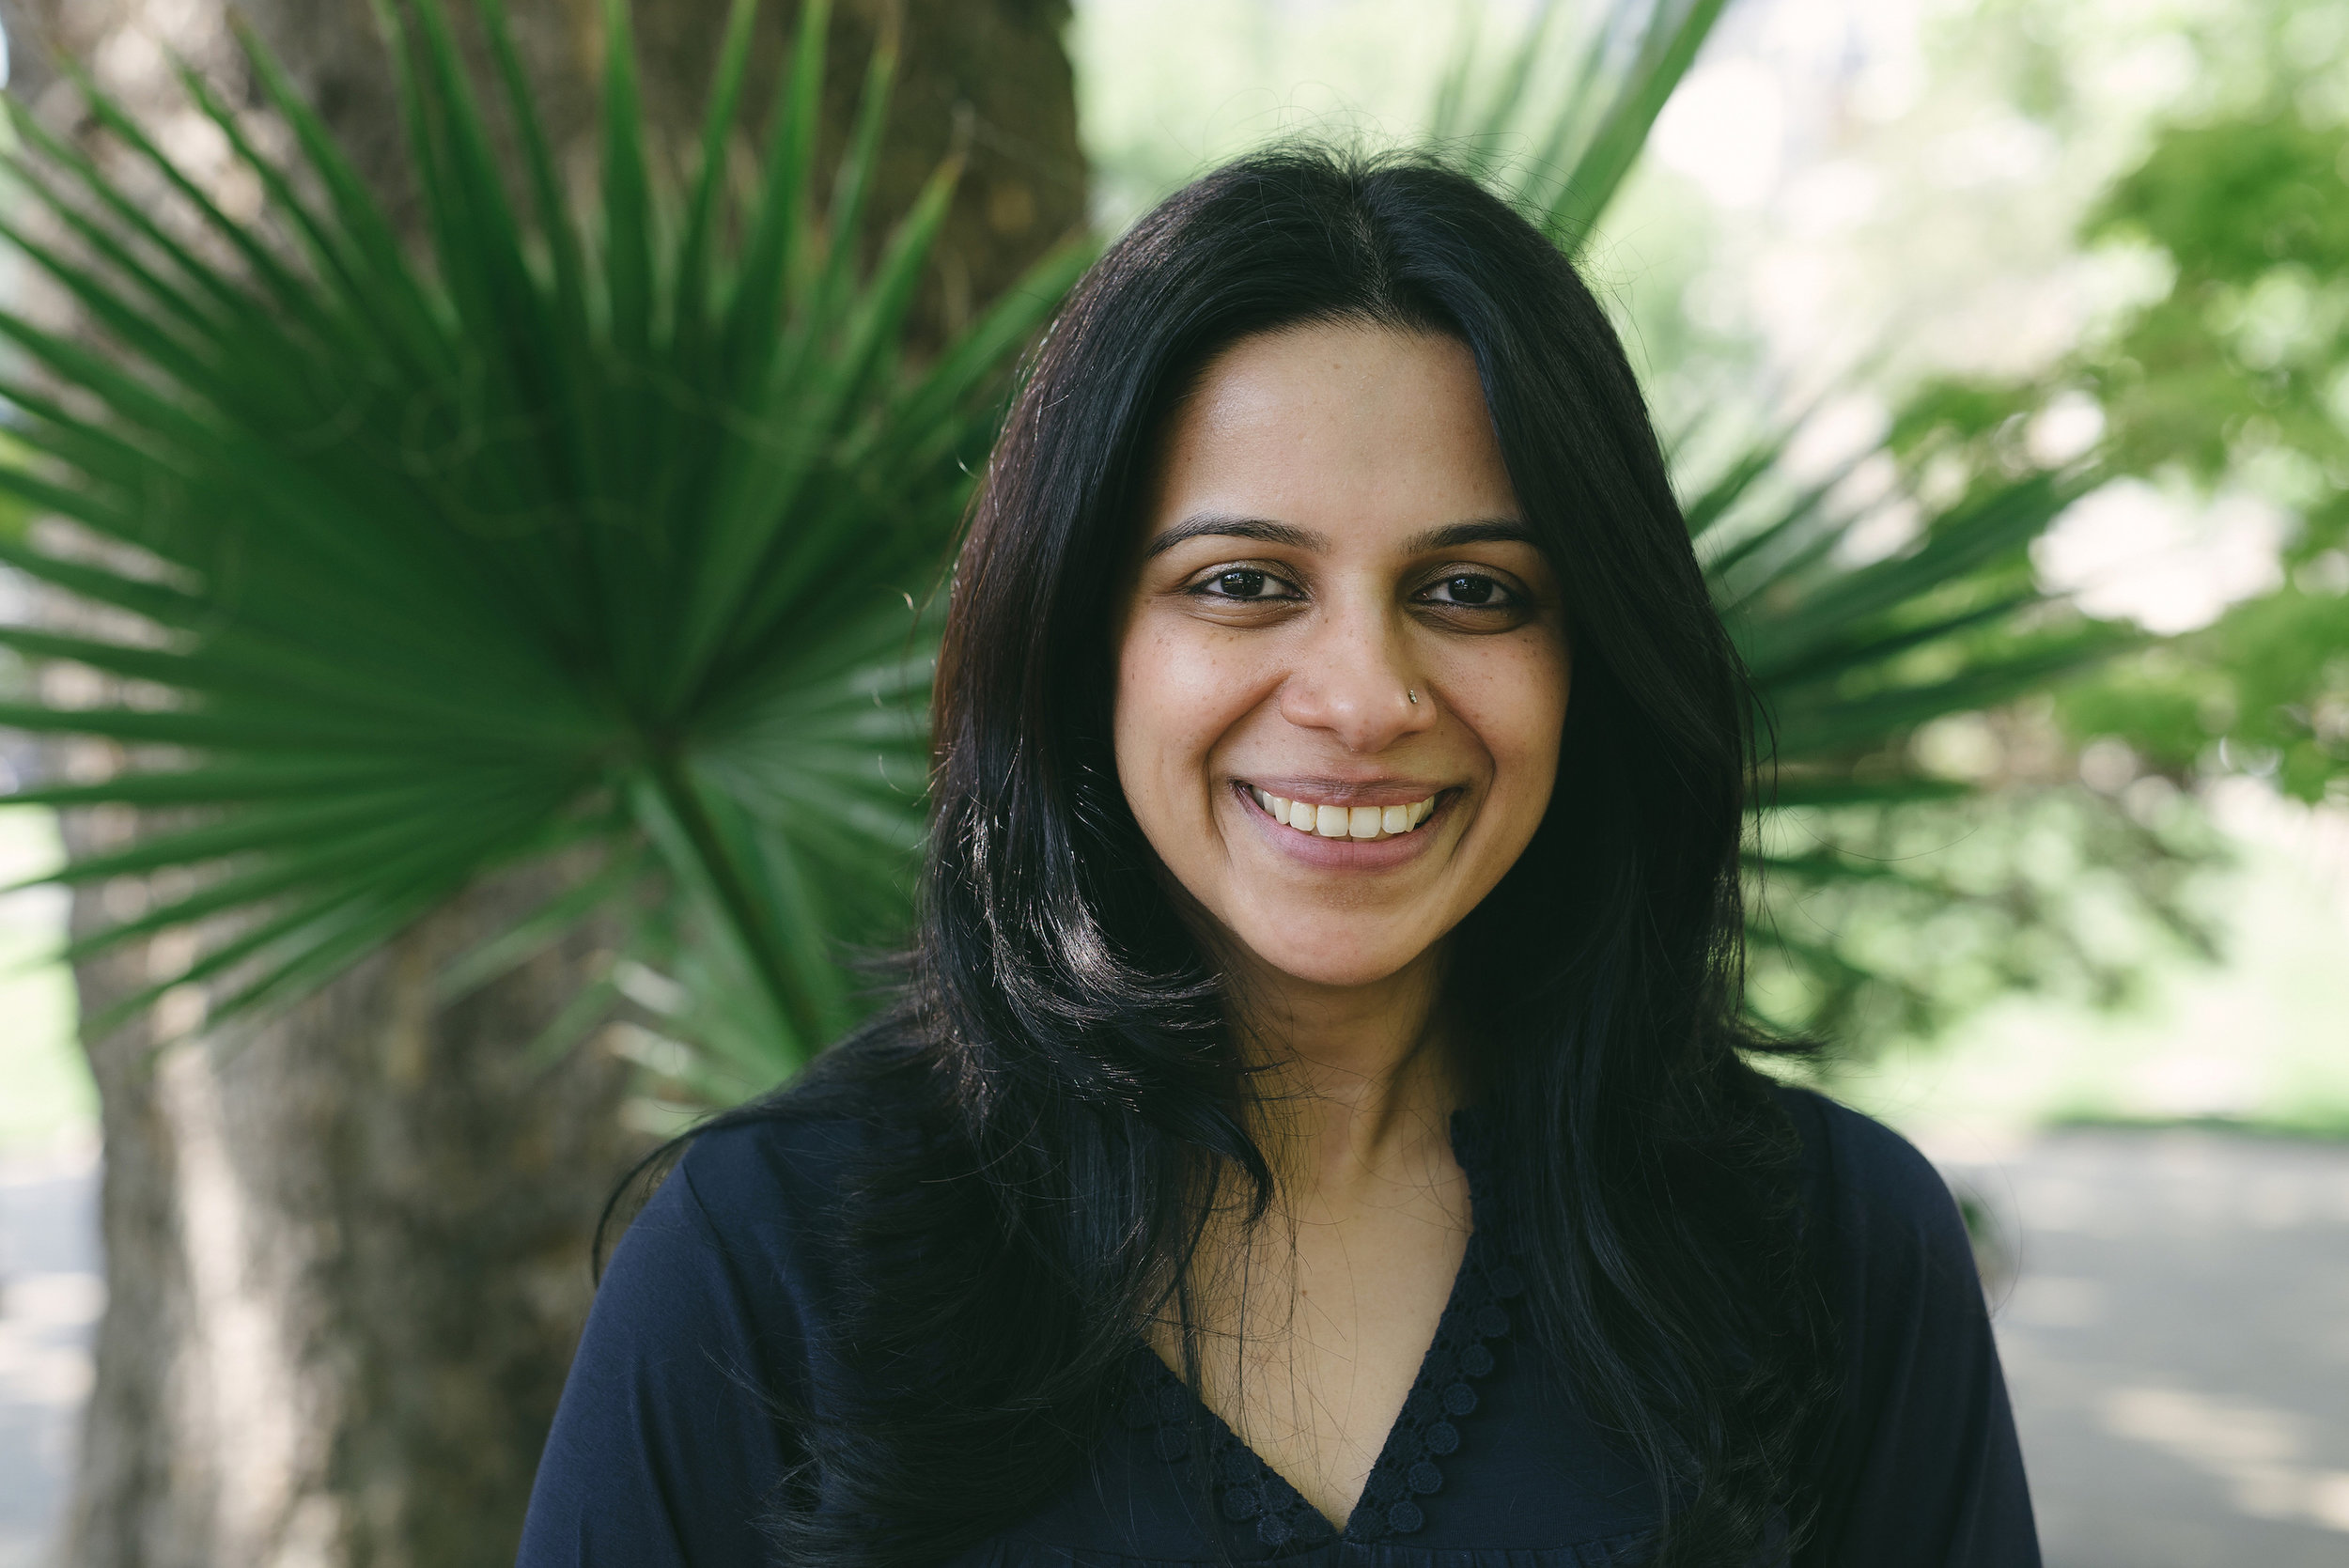 Rashmi Sirdeshpande author photo 1.jpg